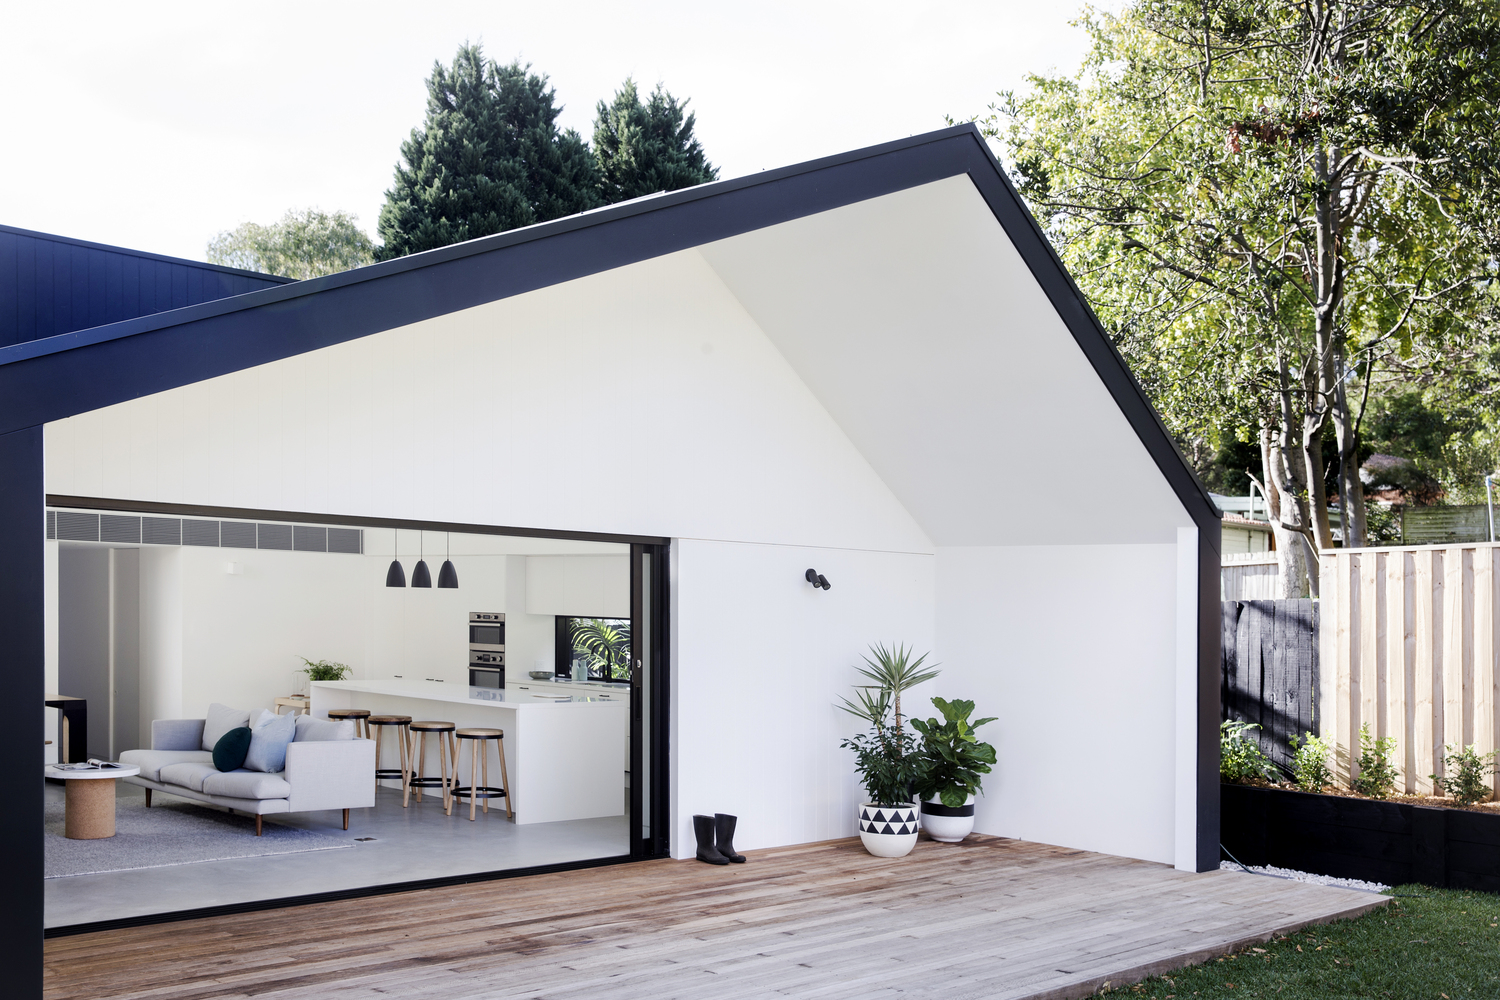 Meet the Modular Home Design Inspired by a Piece of IKEA Furniture